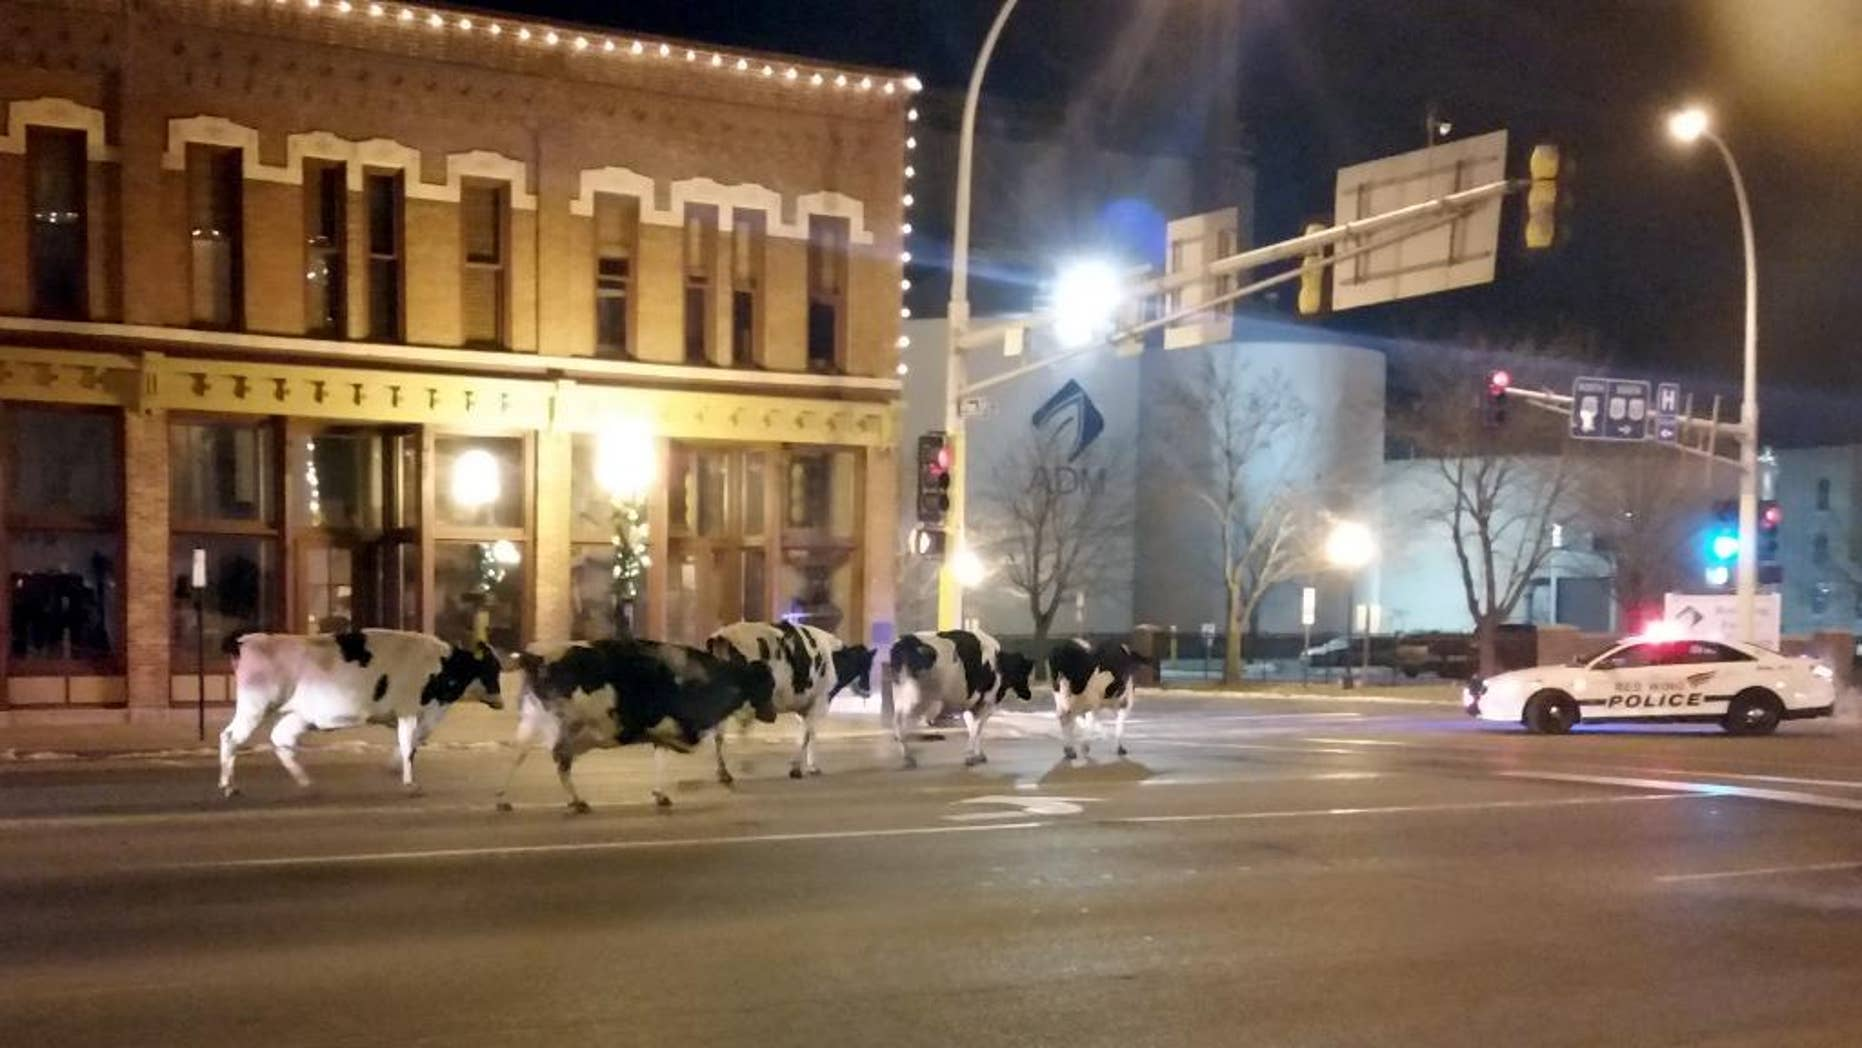 In this Dec. 3, 2014 photo provided by Jeffrey Chandler six wayward dairy cows saunter down the main drag in Red Wing, Minn., a small city tucked along the Mississippi River. Authorities say the owner noticed the cattle were missing when he returned to his farm in Hager City, Wis., and figured they were in Red Wing where he had stopped. (AP Photo/Jeffrey Chaldler)